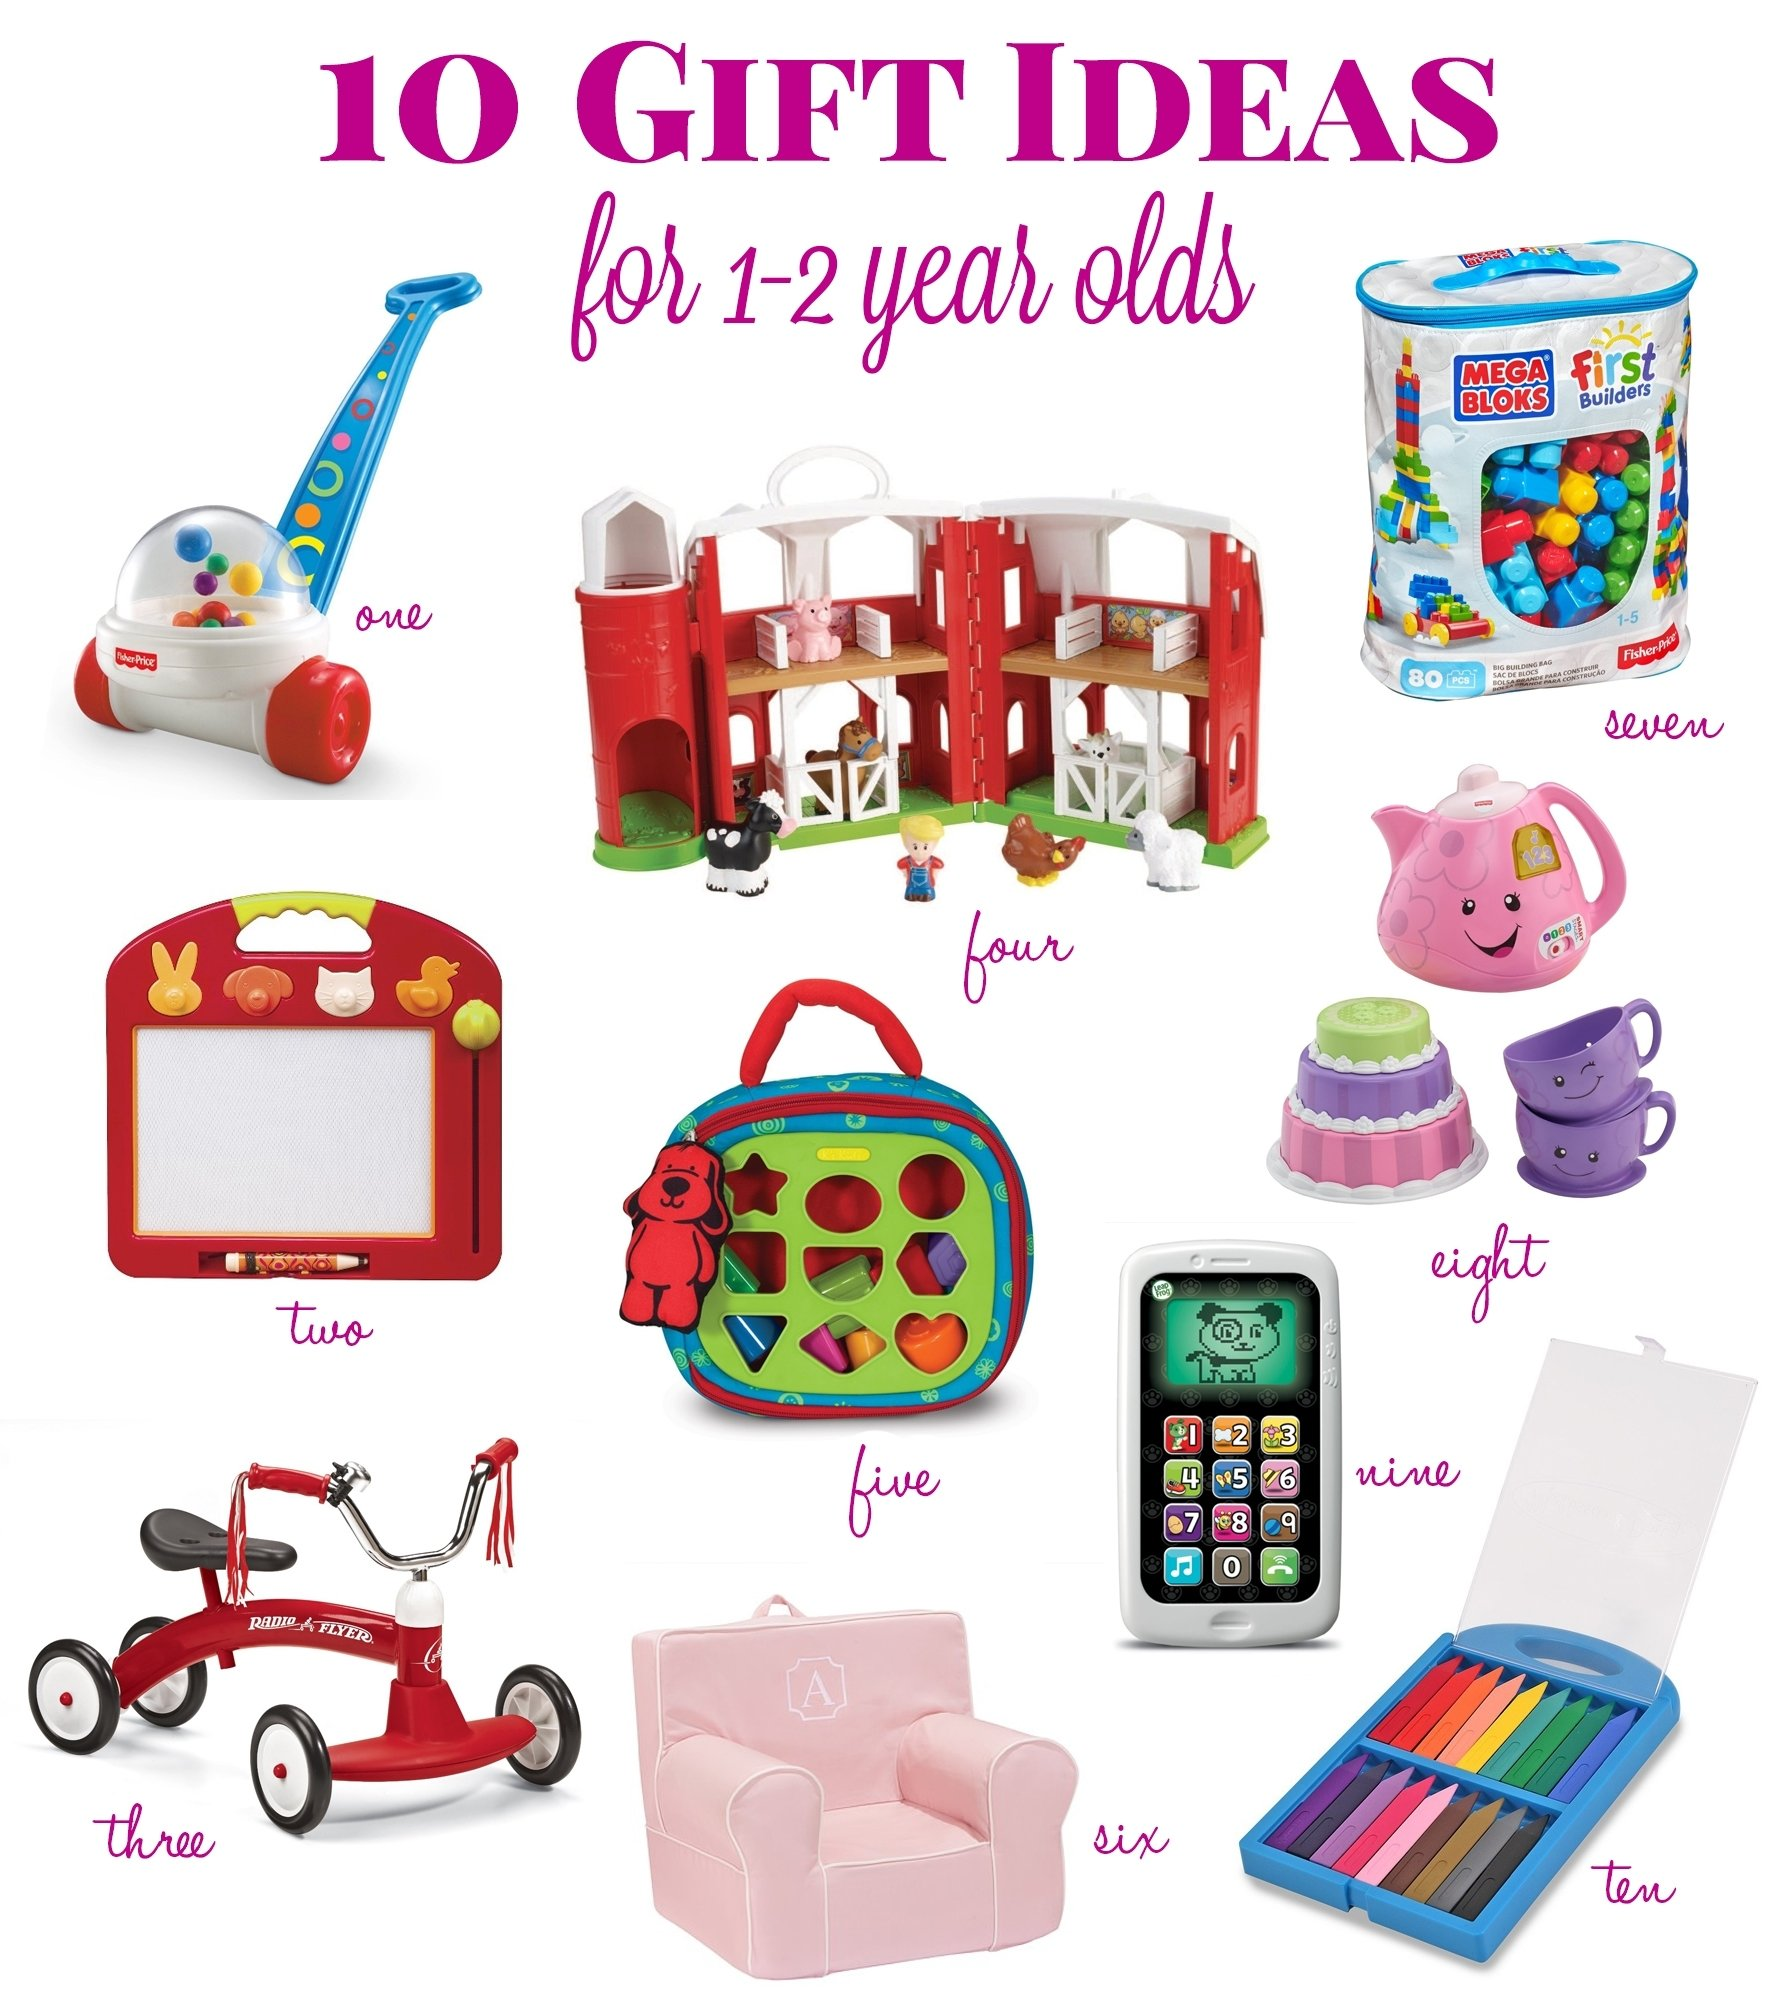 10 Gorgeous Gift Ideas For Two Year Old gift ideas for a 1 year old lifes tidbits 14